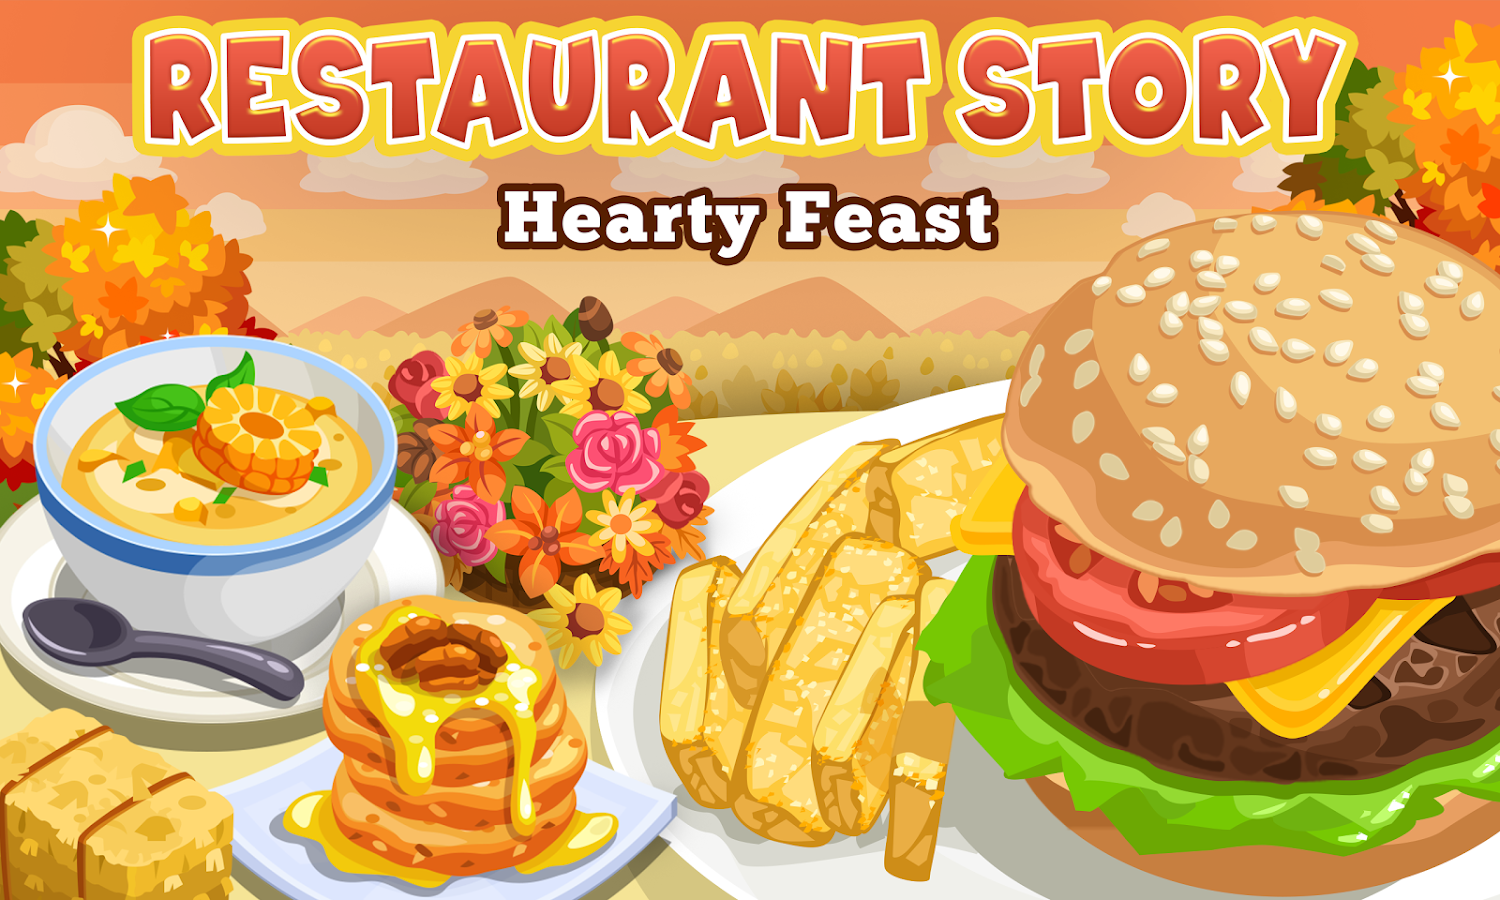 restaurant story hearty feast android apps on google play restaurant story hearty feast screenshot